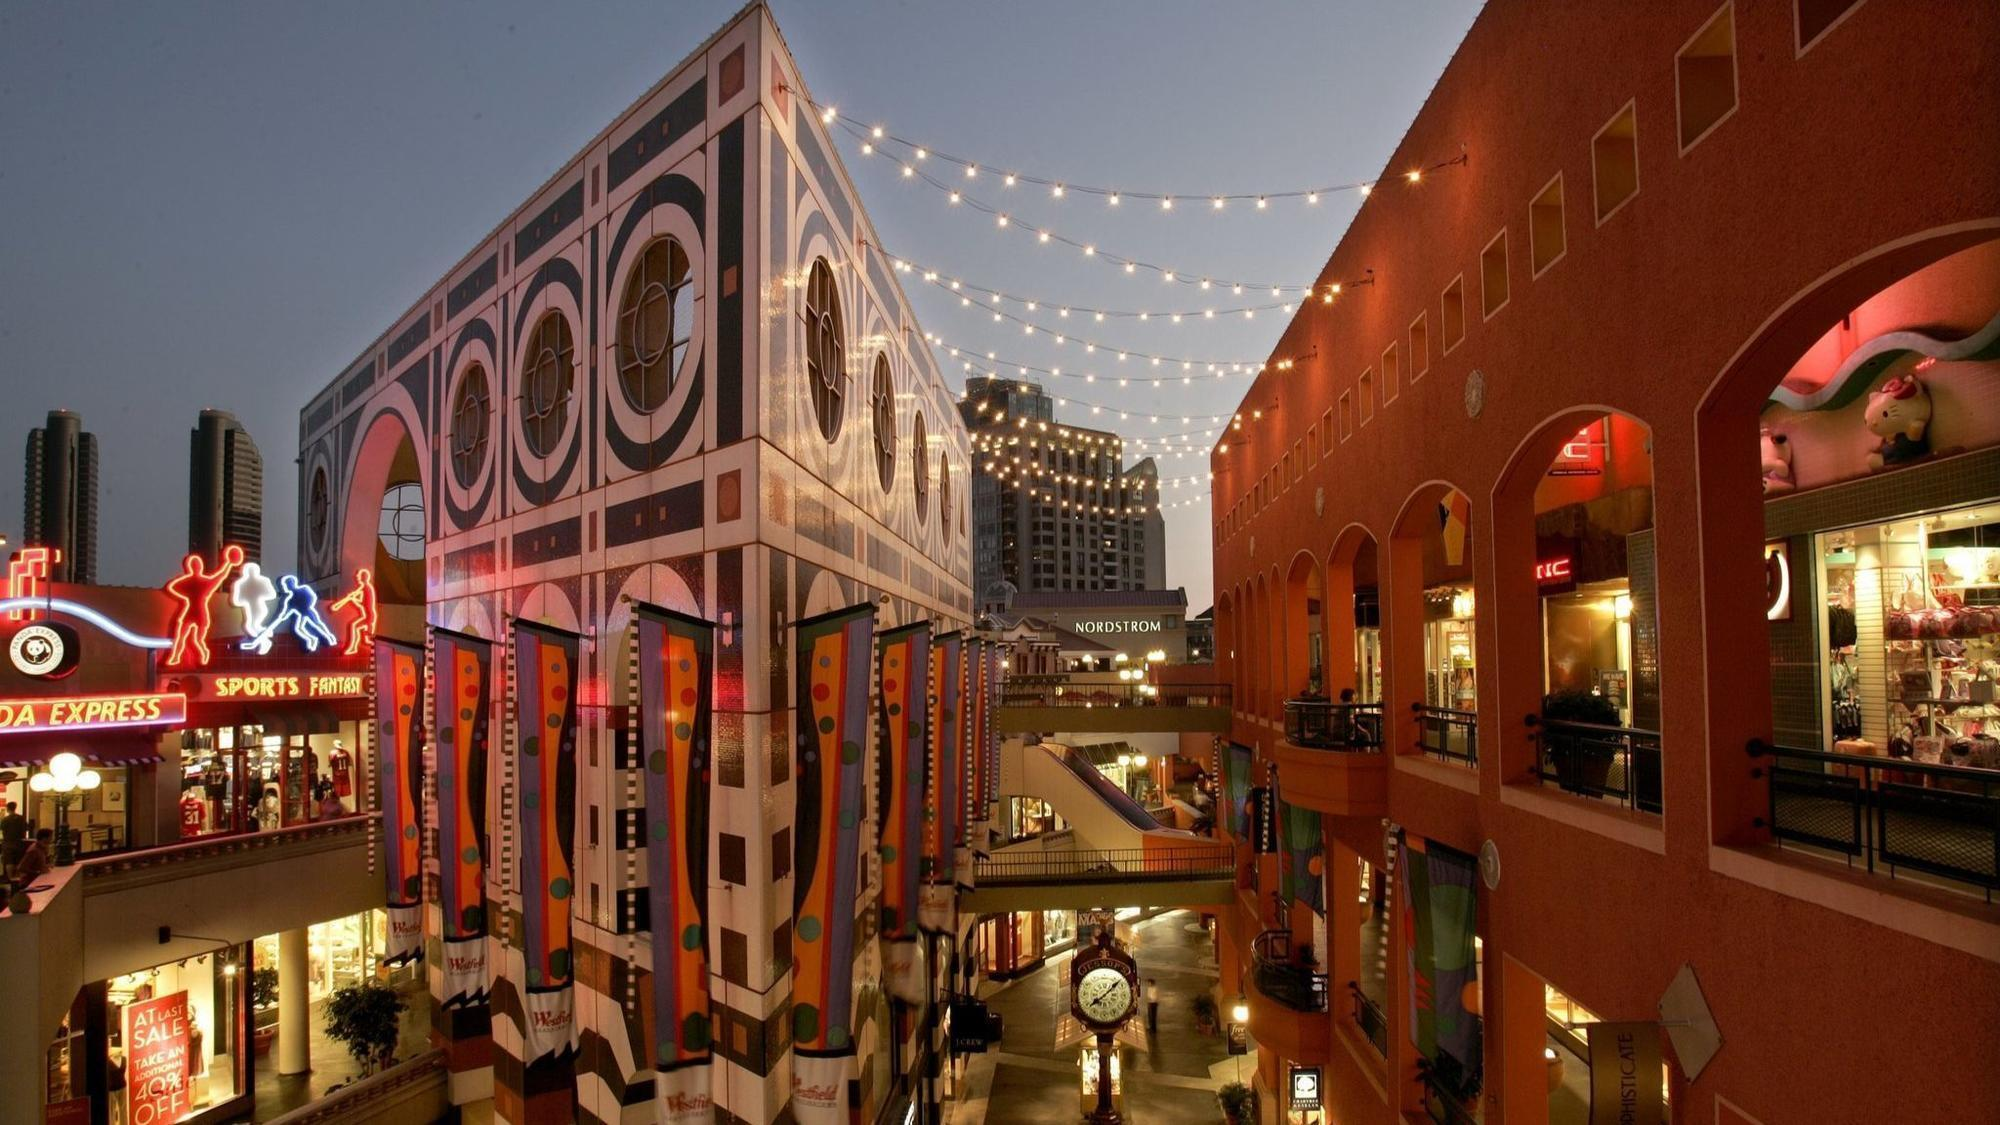 Horton Plaza - image link to source article